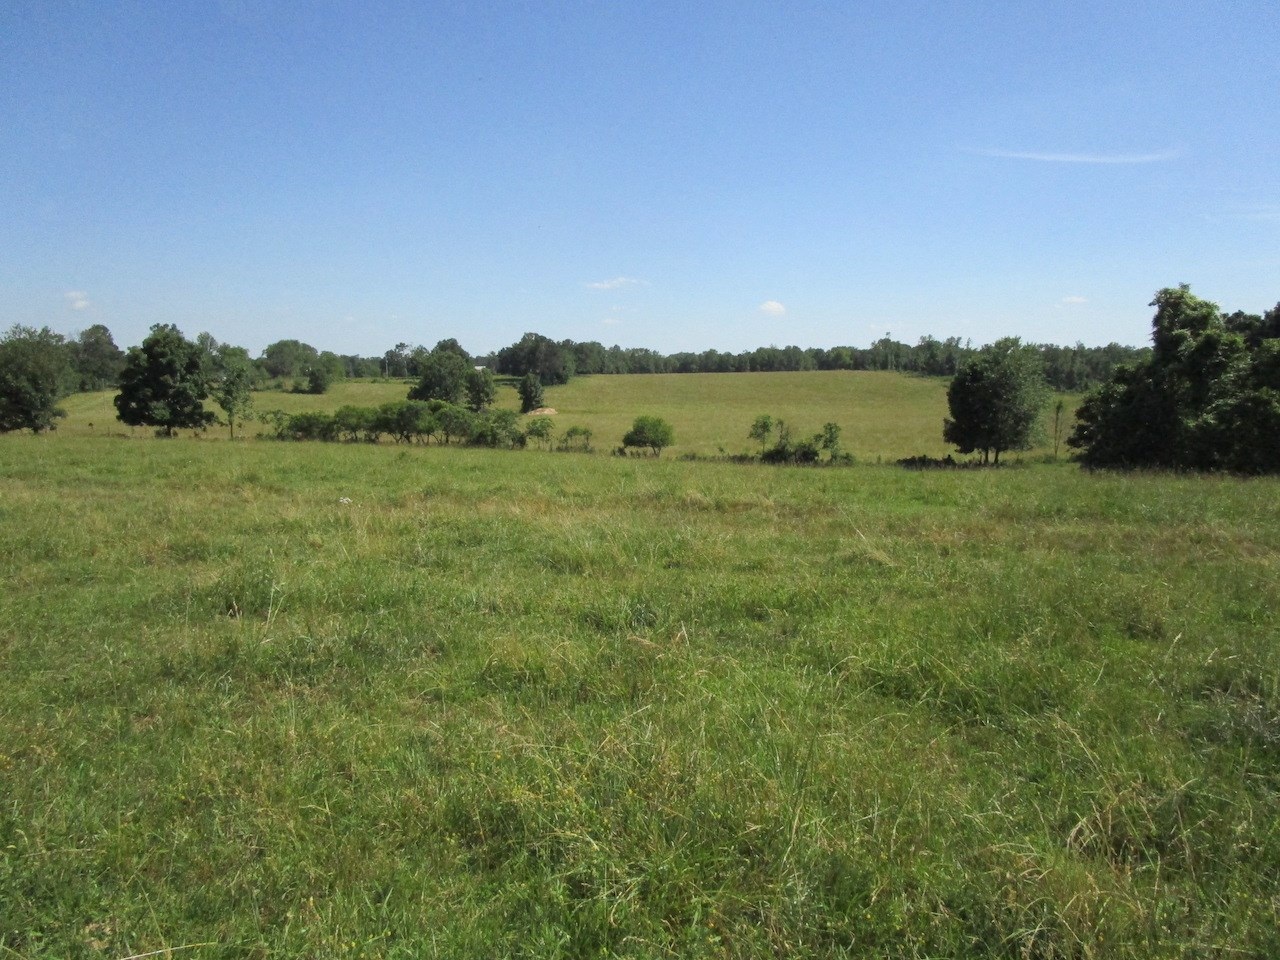 Farm Land for Sale in South Central Missouri